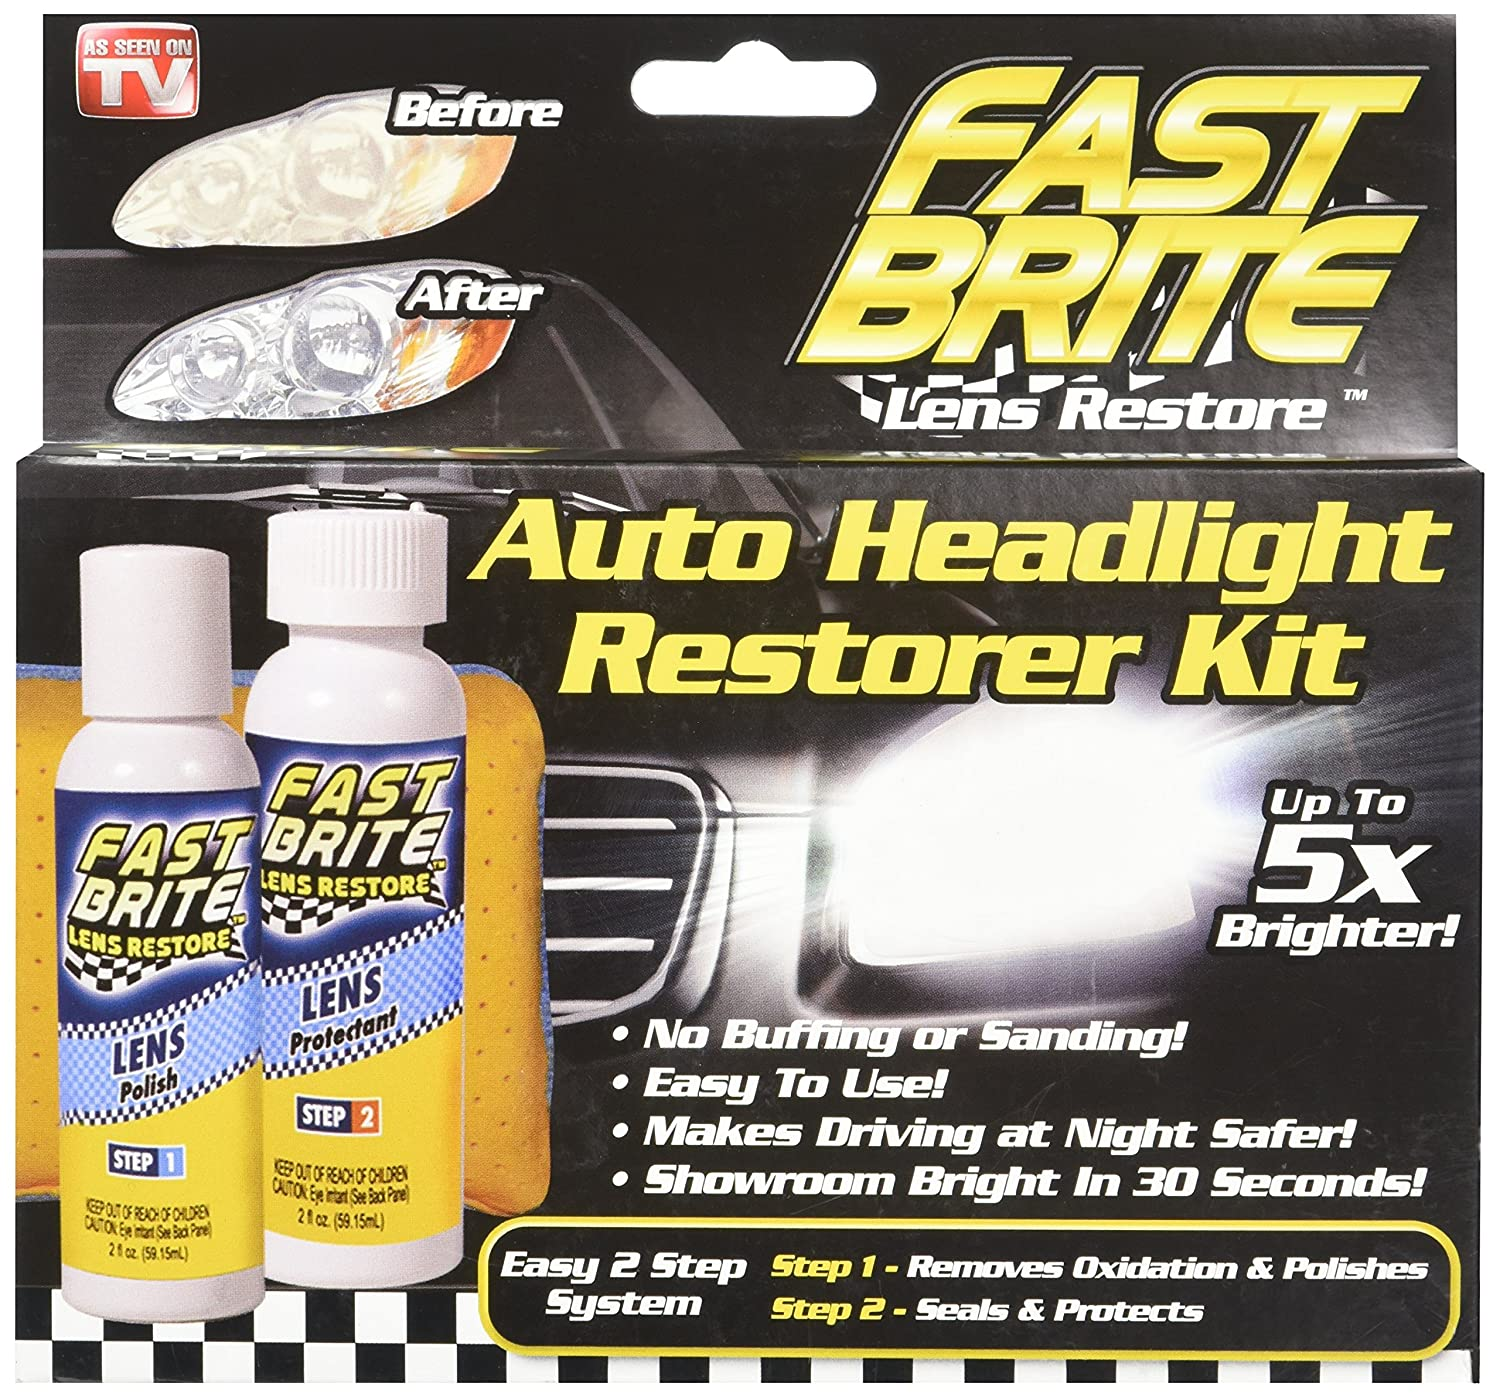 Fast Bright Auto Headlight Restore Kit Standard Plumbing Supply IT-1000